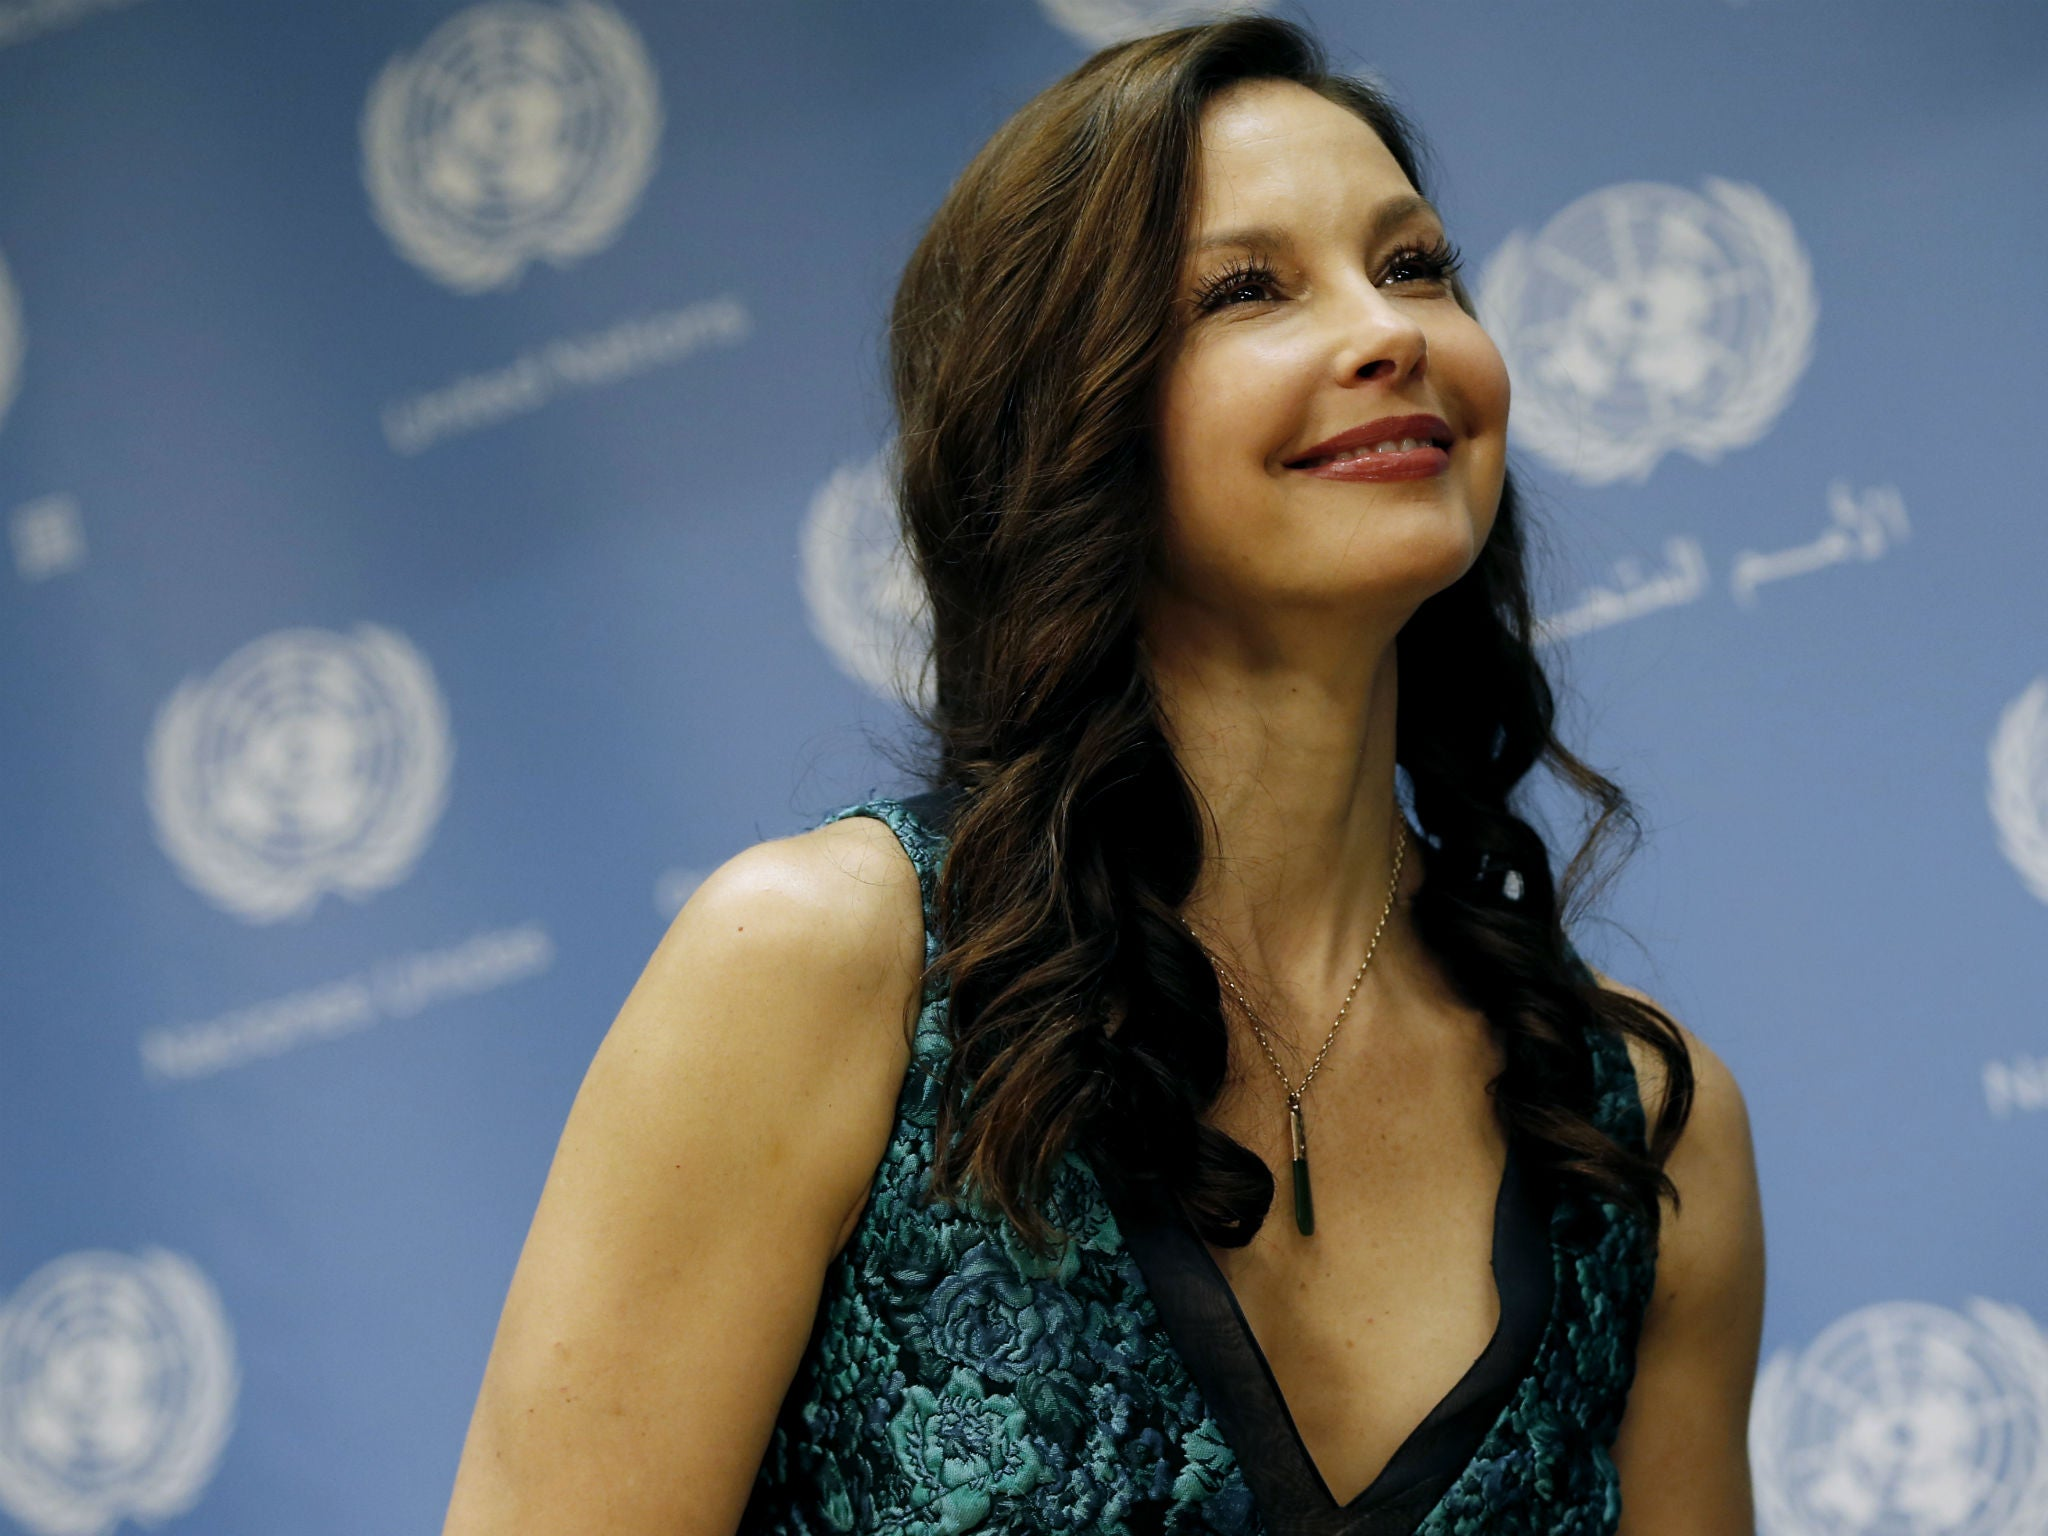 The model says she has also asked her famous family not to come to her - Ashley Judd Relays How She Rebuffed Harvey Weinstein